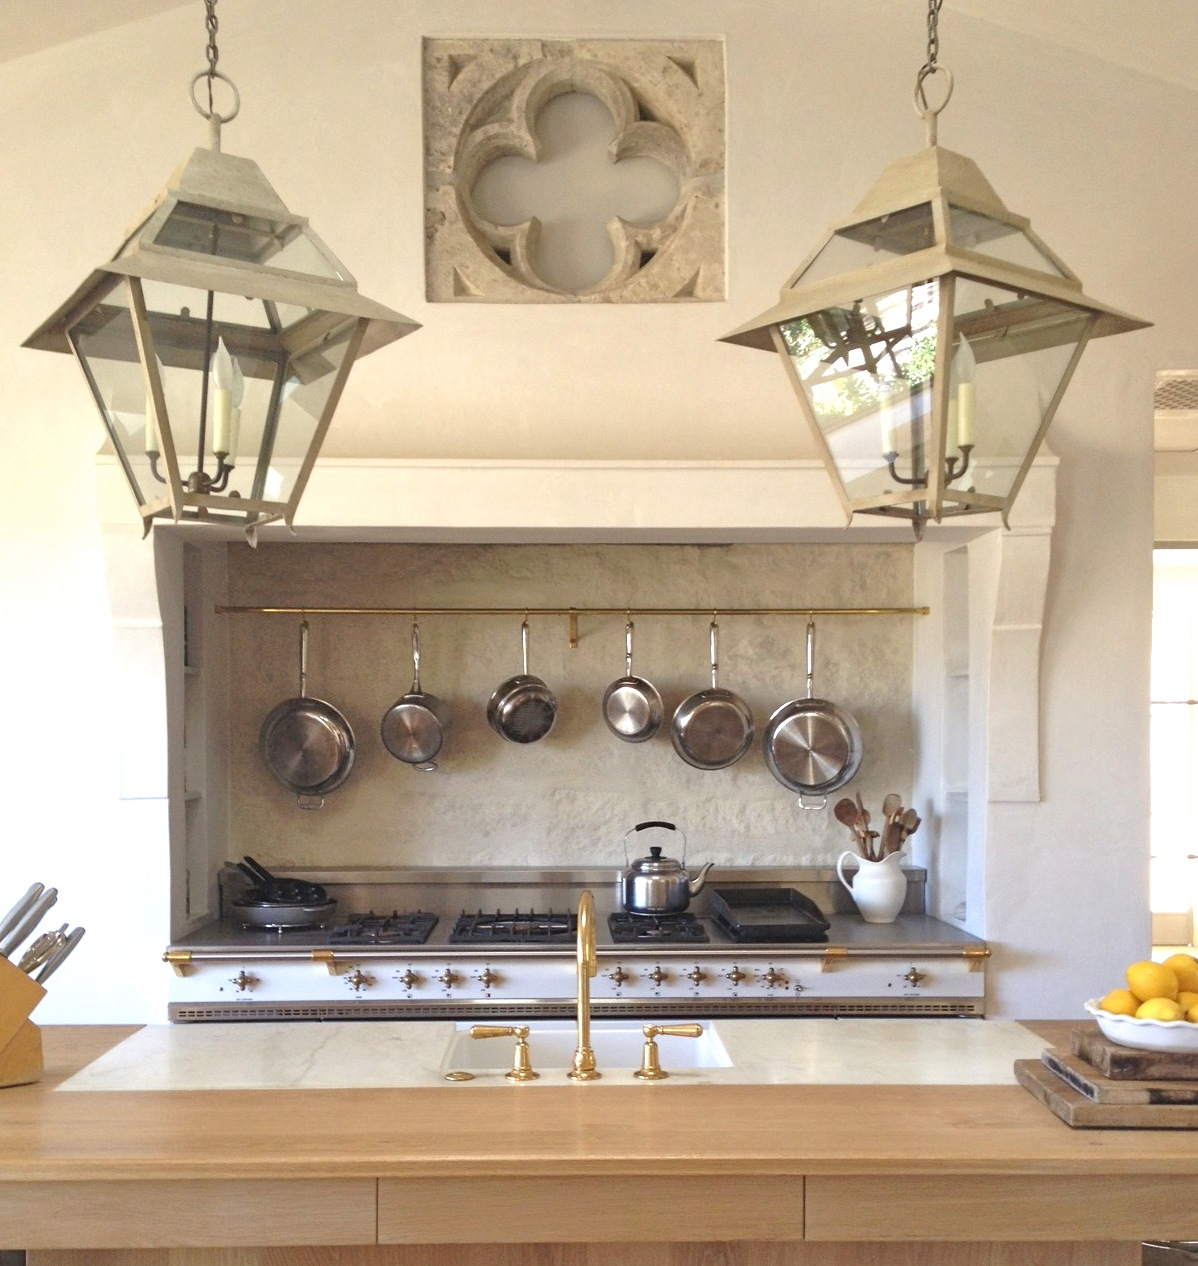 patina farm update kitchen details unlacquered brass kitchen faucet The kitchen design is working very well I don t miss having upper cabinets and enjoy the view of the garden every day